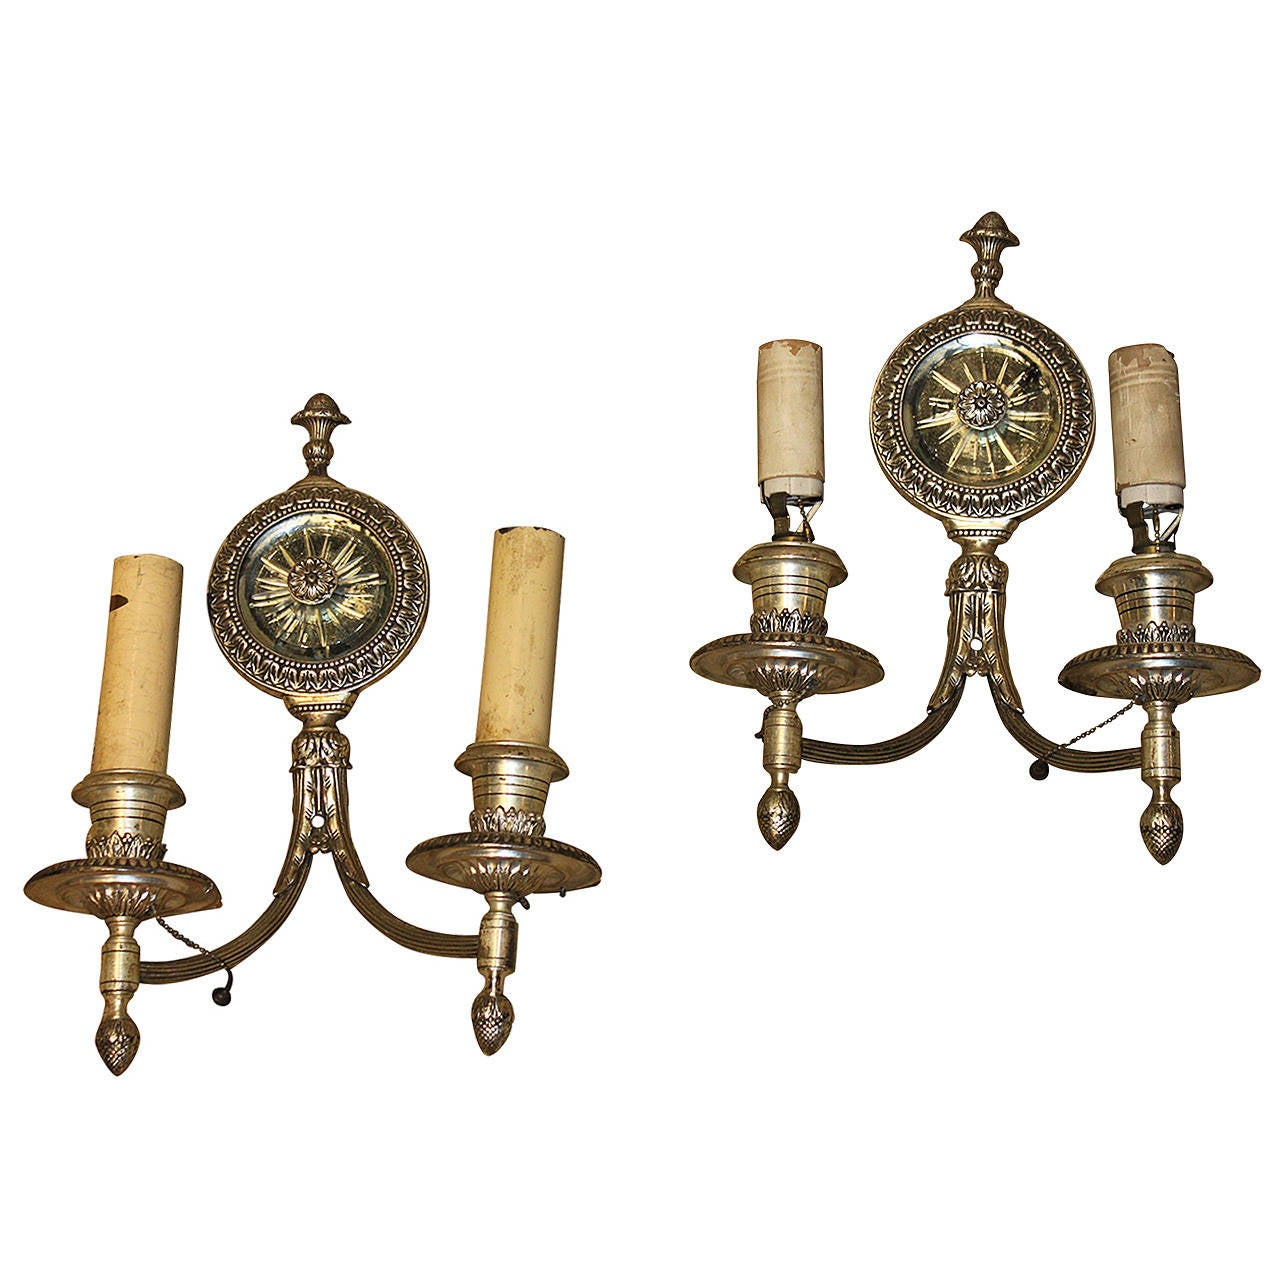 Wall Sconces Antique Silver : Pair of Antique Silver Mirror Wall Sconces For Sale at 1stdibs